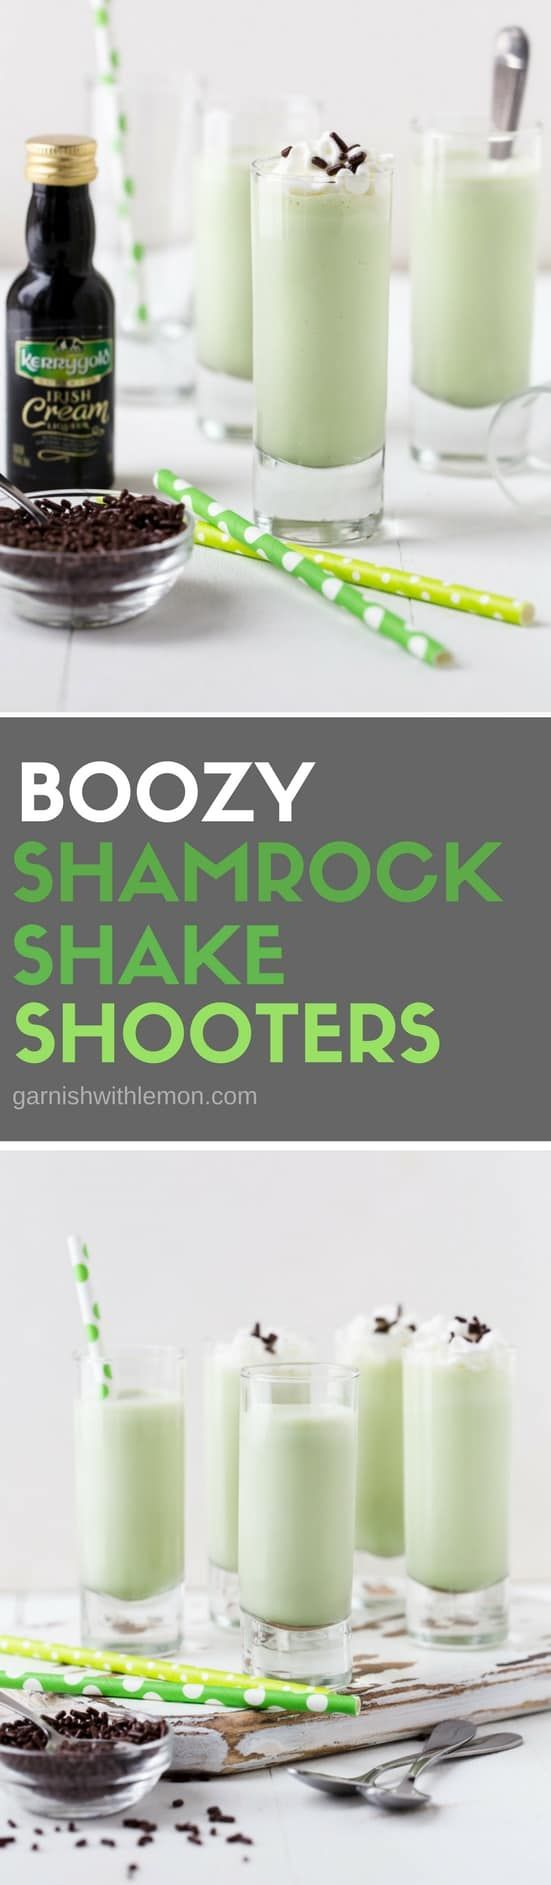 Say Cheers to a round of these 3-ingredient Boozy Shamrock Shake Shooters at your next party!